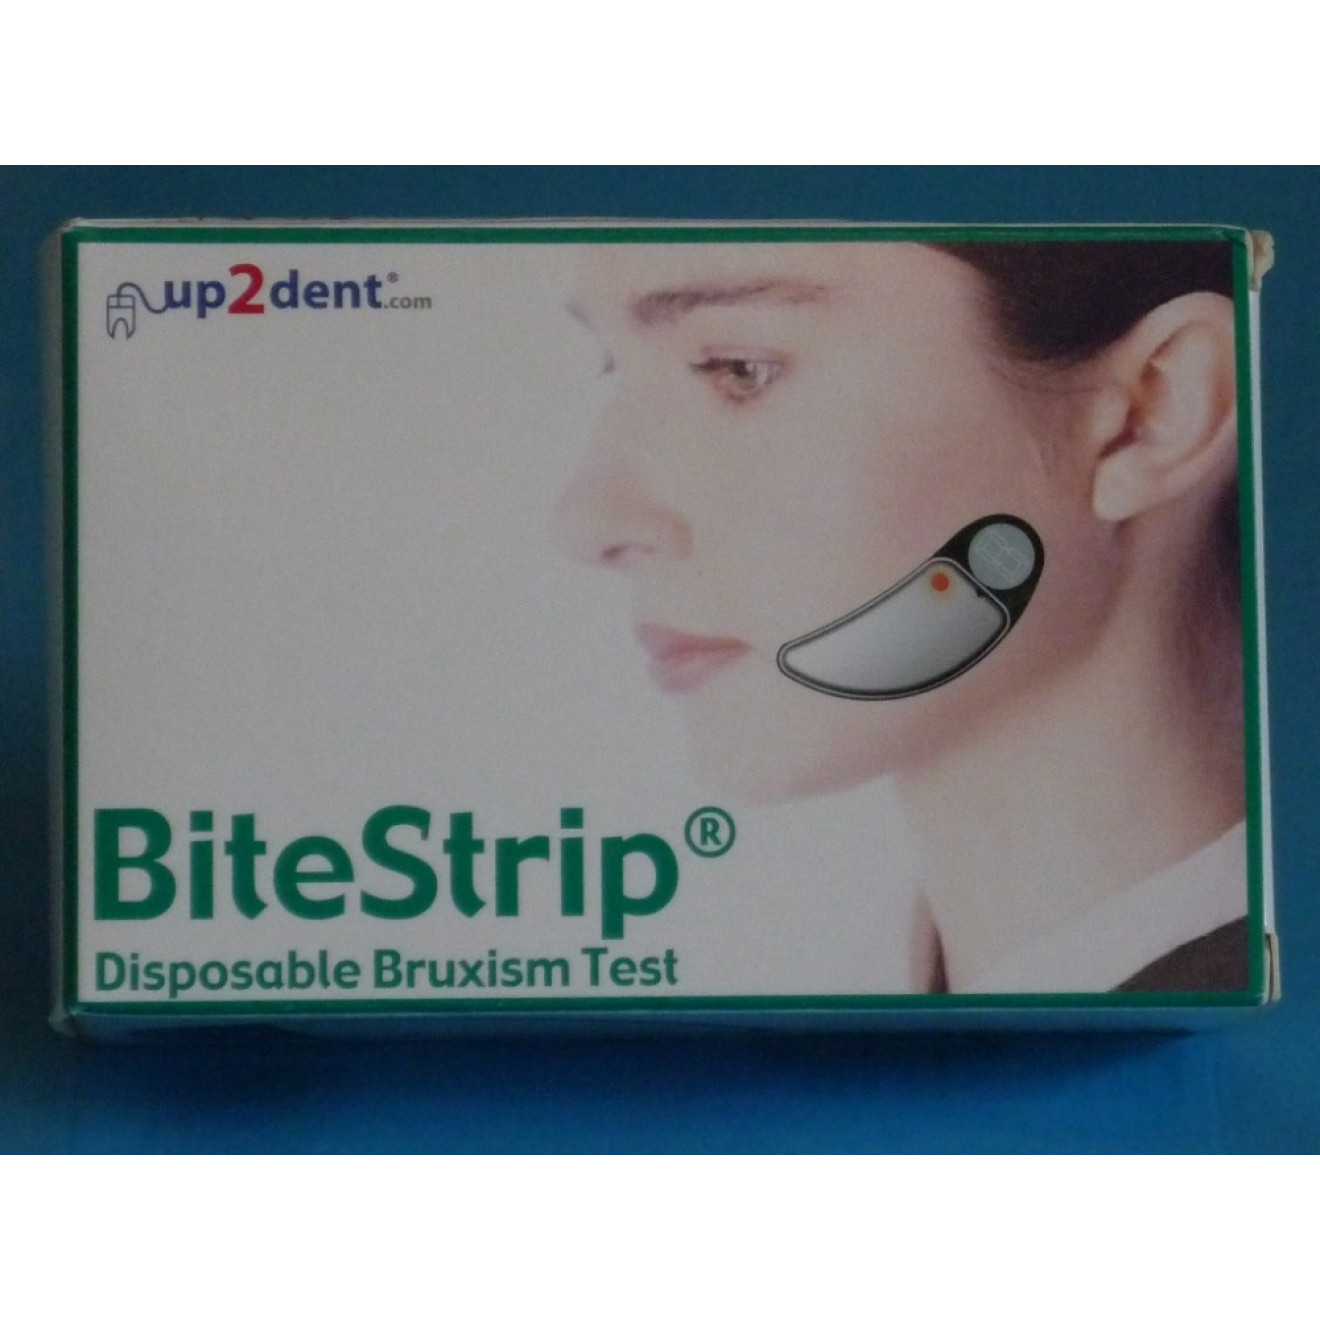 BiteStrip